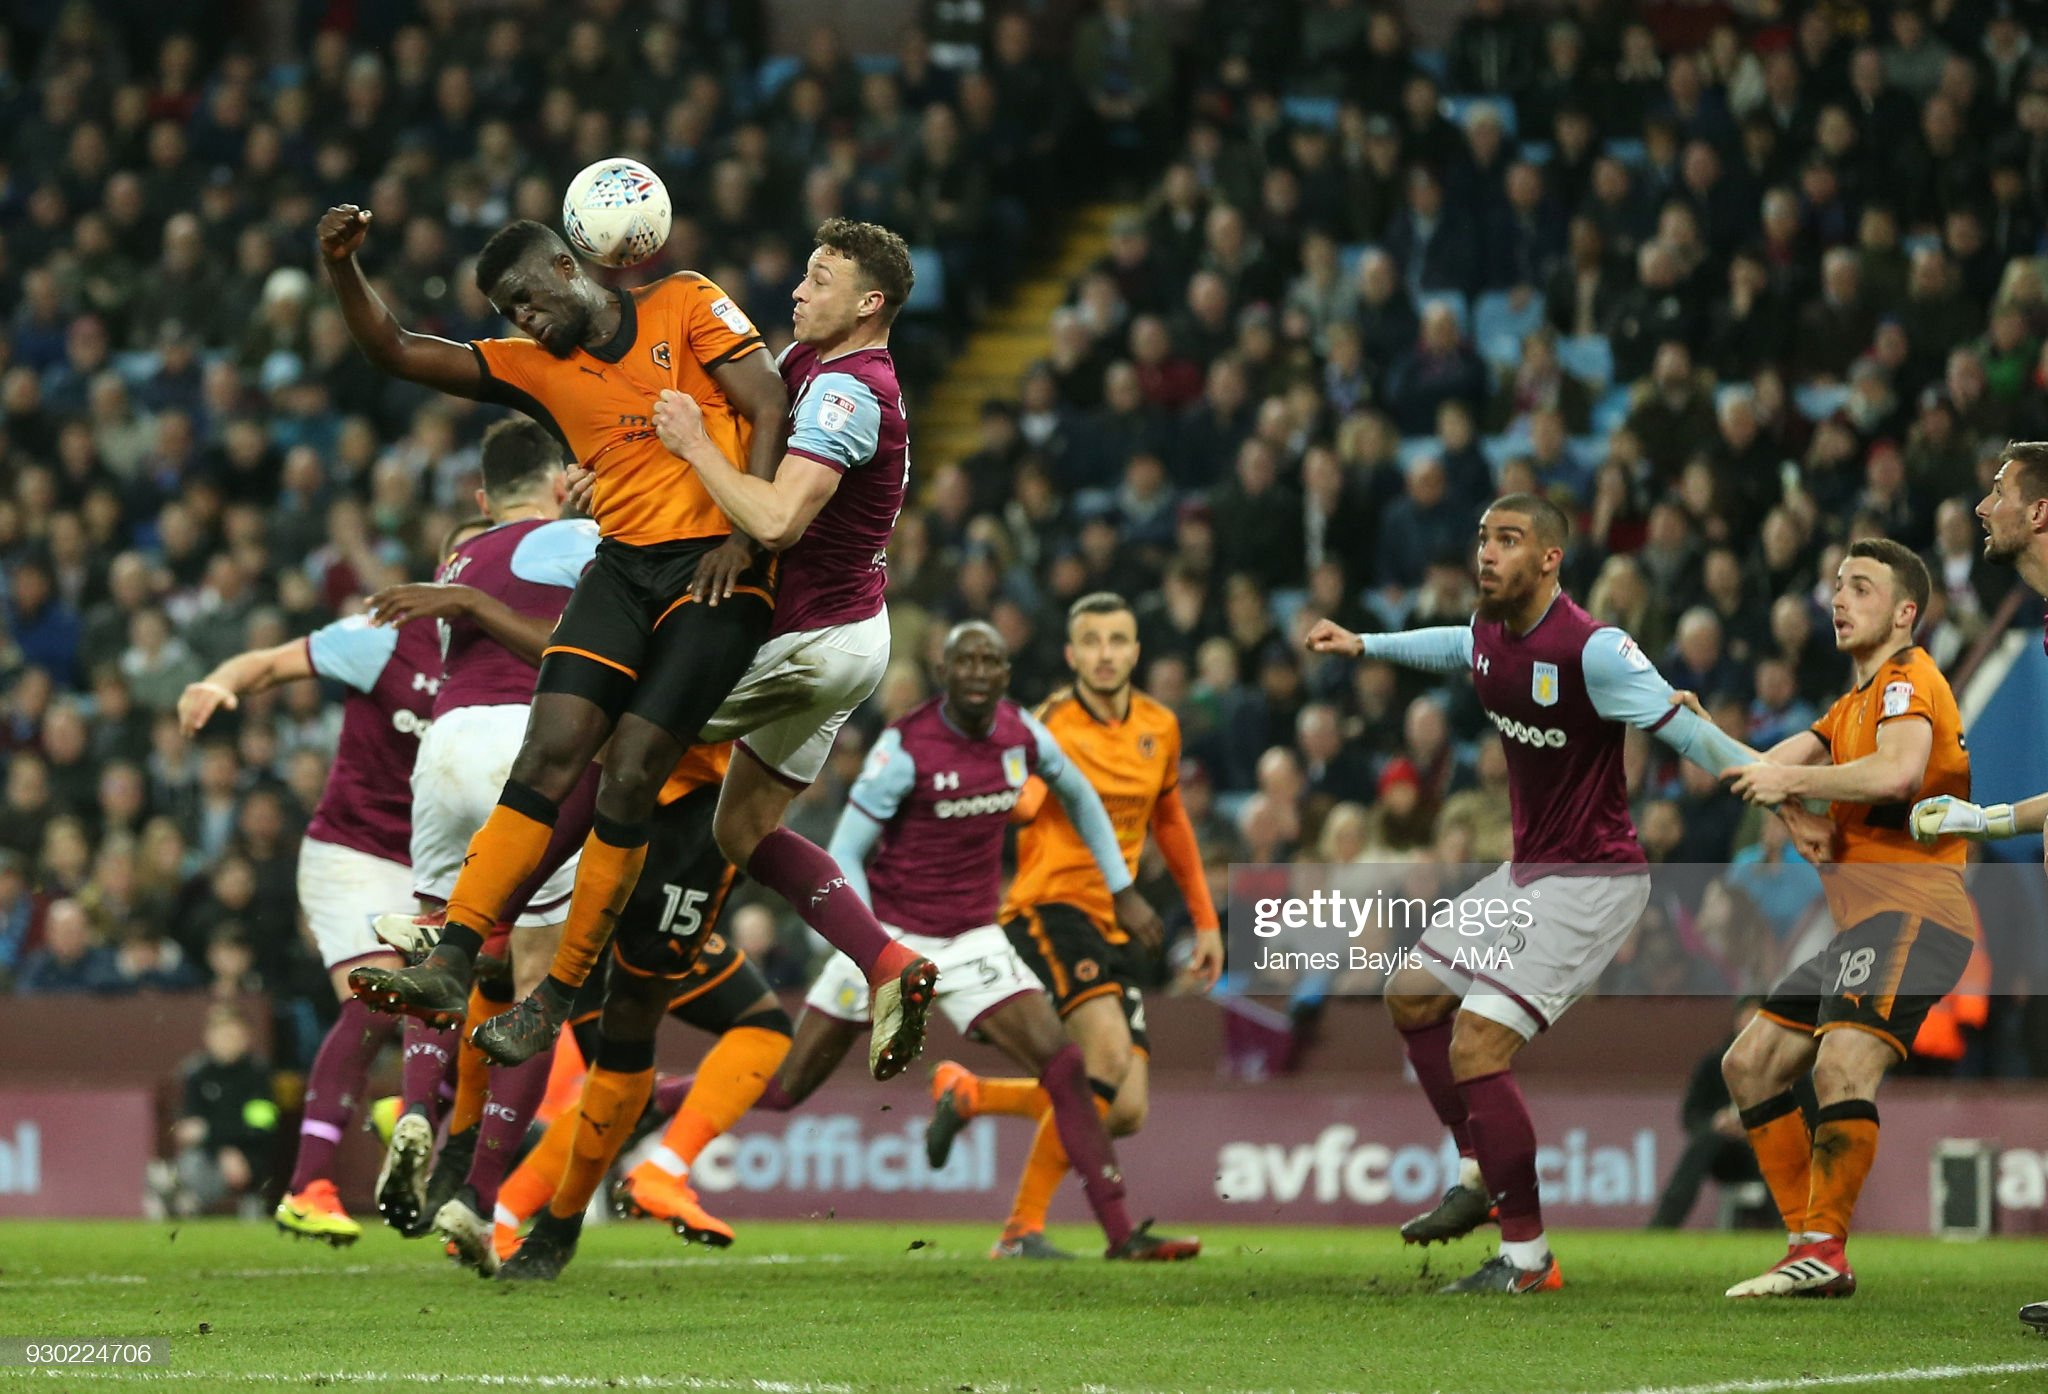 Aston Villa v Wolves preview, prediction and odds